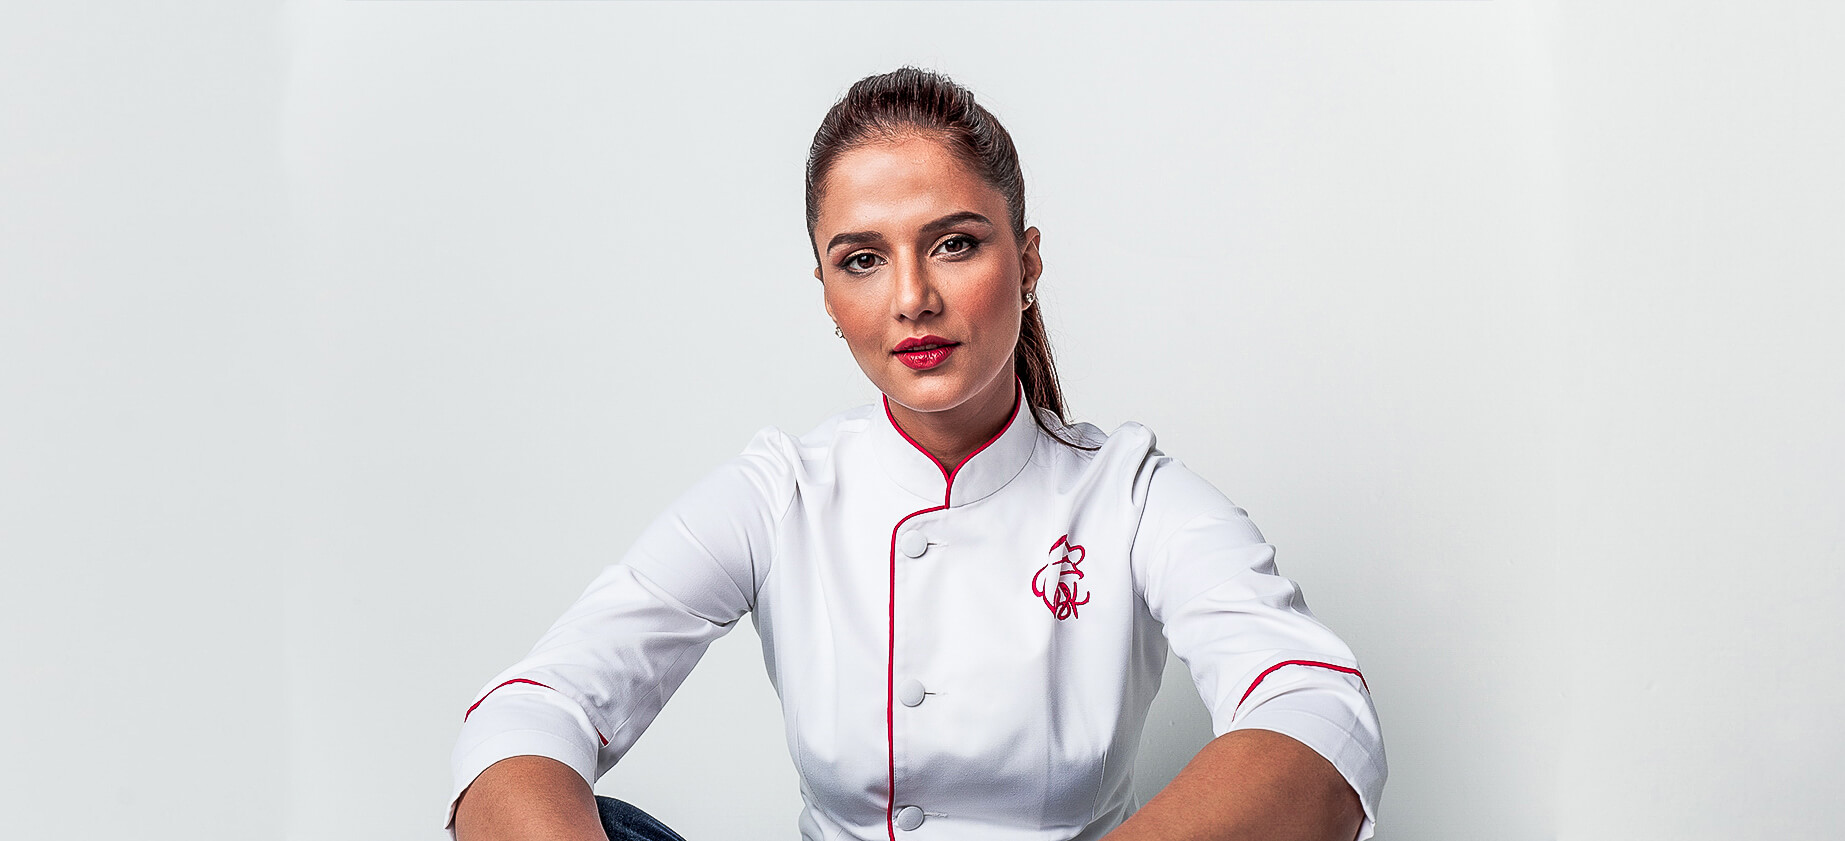 Masterchef Shipra Khanna's path to freedom through the kitchen